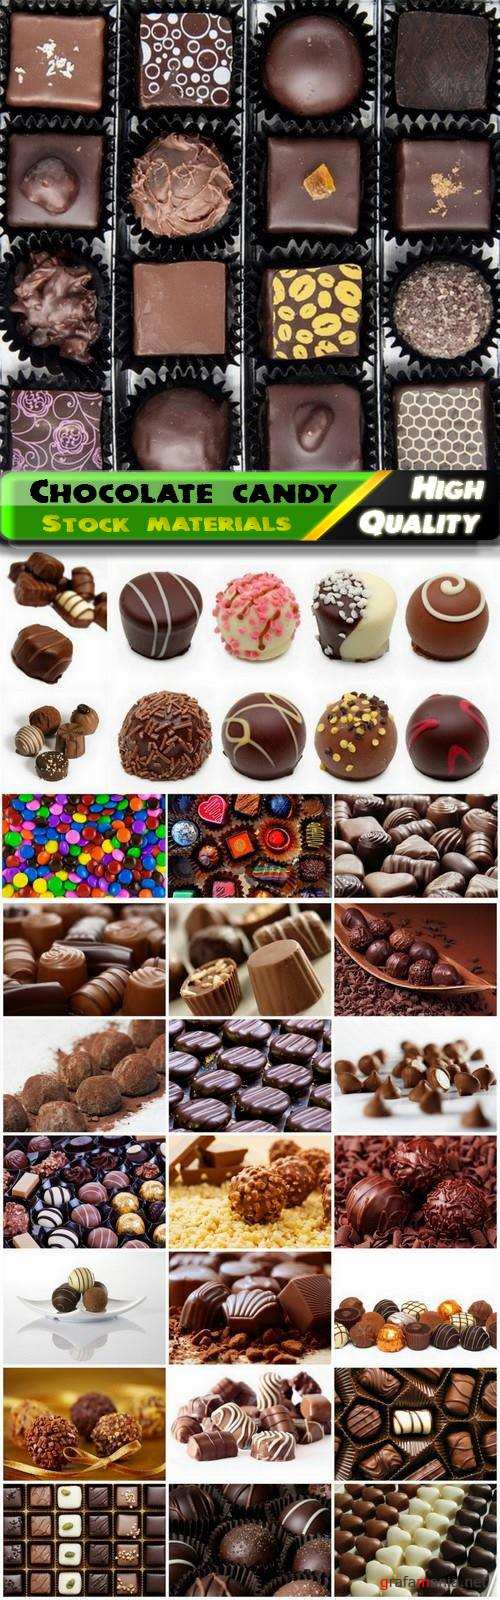 Sweet food and chocolate candy with glaze cream and nuts - 25 Jpg